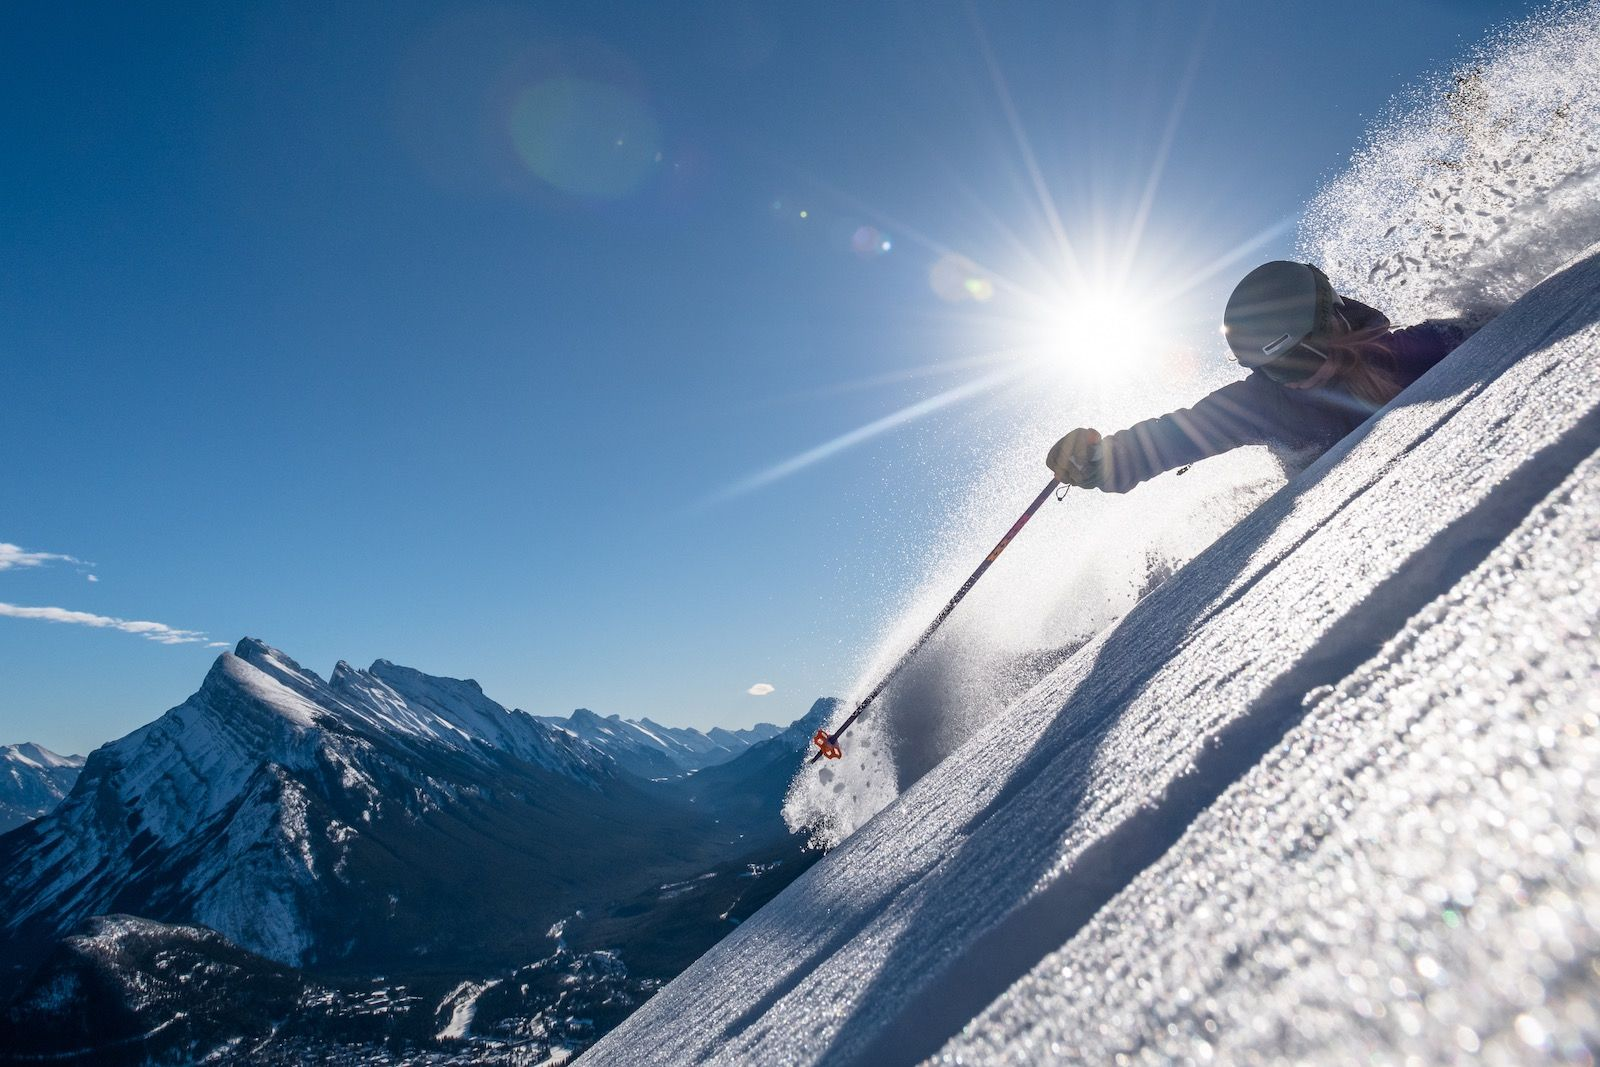 12 best places to ski in Canada